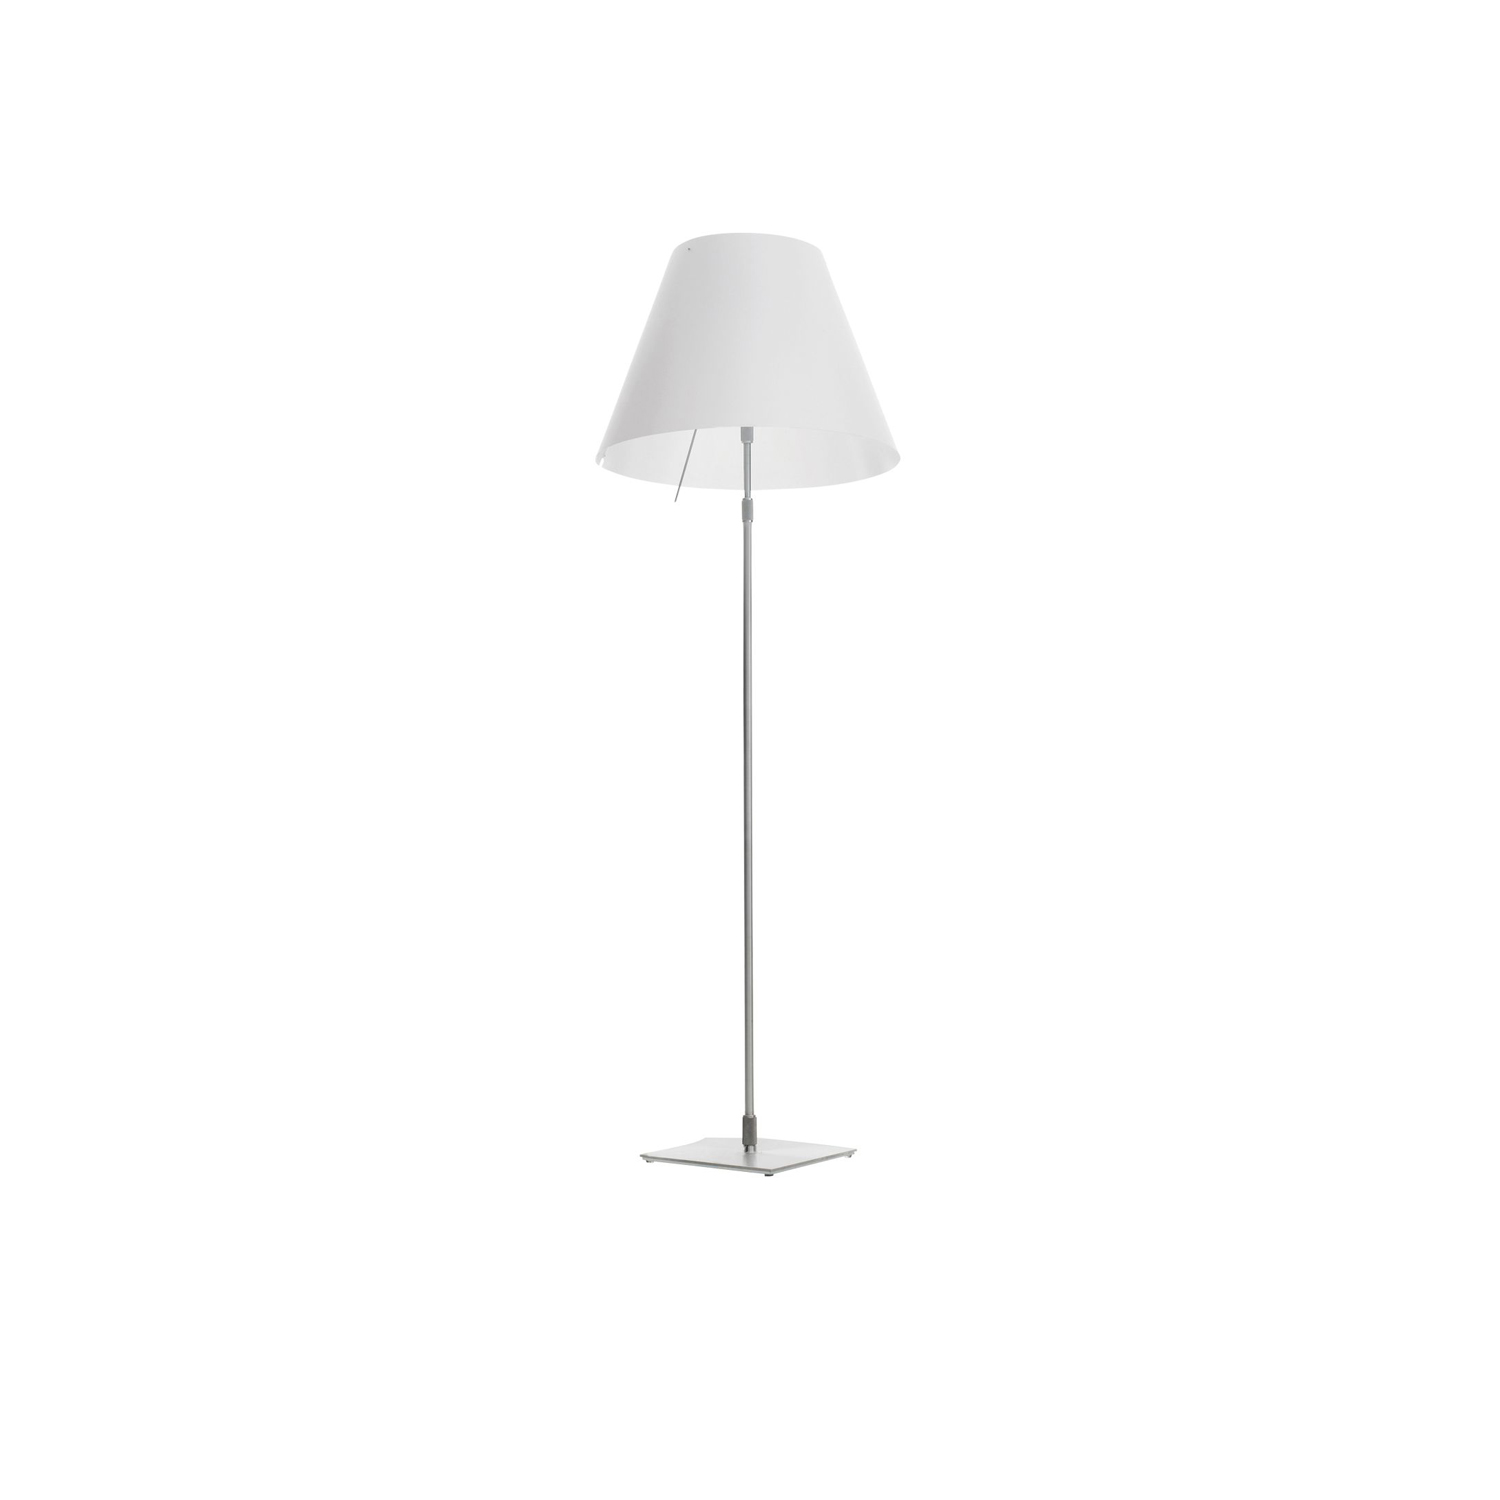 Grande Costanza Floor Lamp - Tradition and innovation meet in this classic maxi floor model. The aluminium stem and polycarbonate lampshade enhance large spaces with lightness and luminosity for which this lamp is renowned. Also available in models with on/off or dimmer switch. | Matter of Stuff